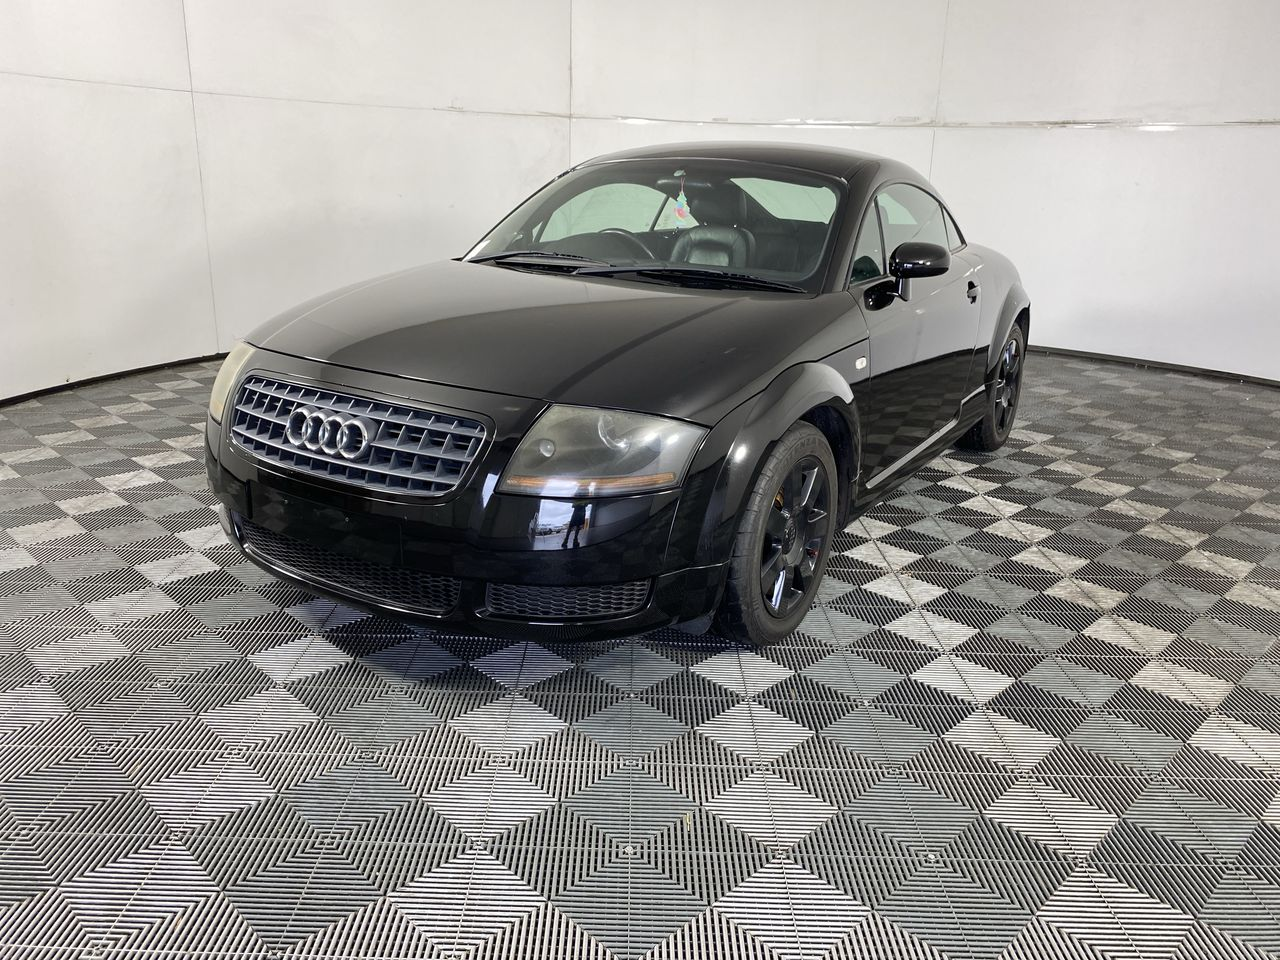 2002 Audi TT 8N Automatic Coupe